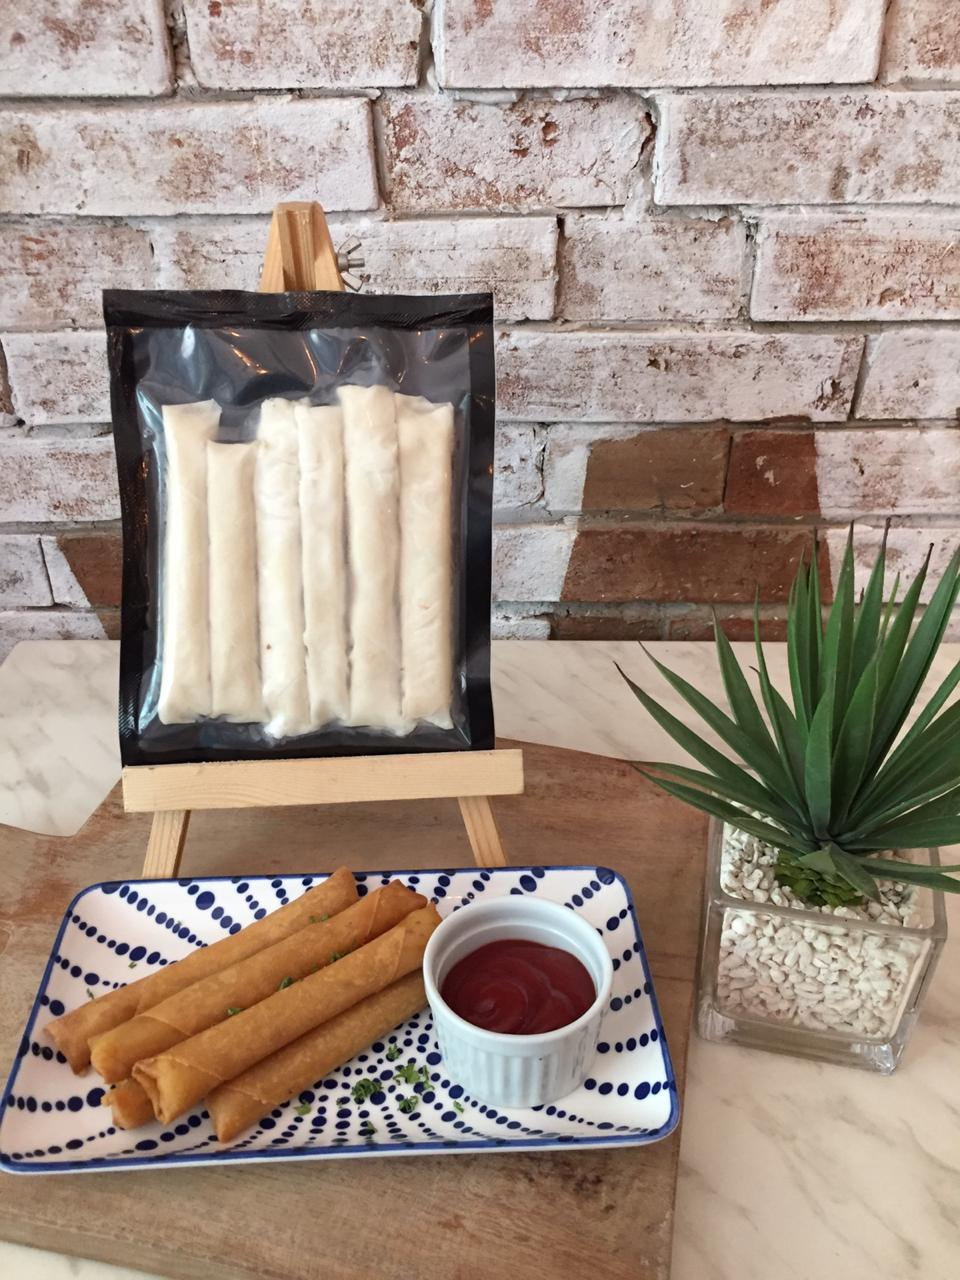 Vegan cheese rolled in a crispy lumpia springroll wrapper.